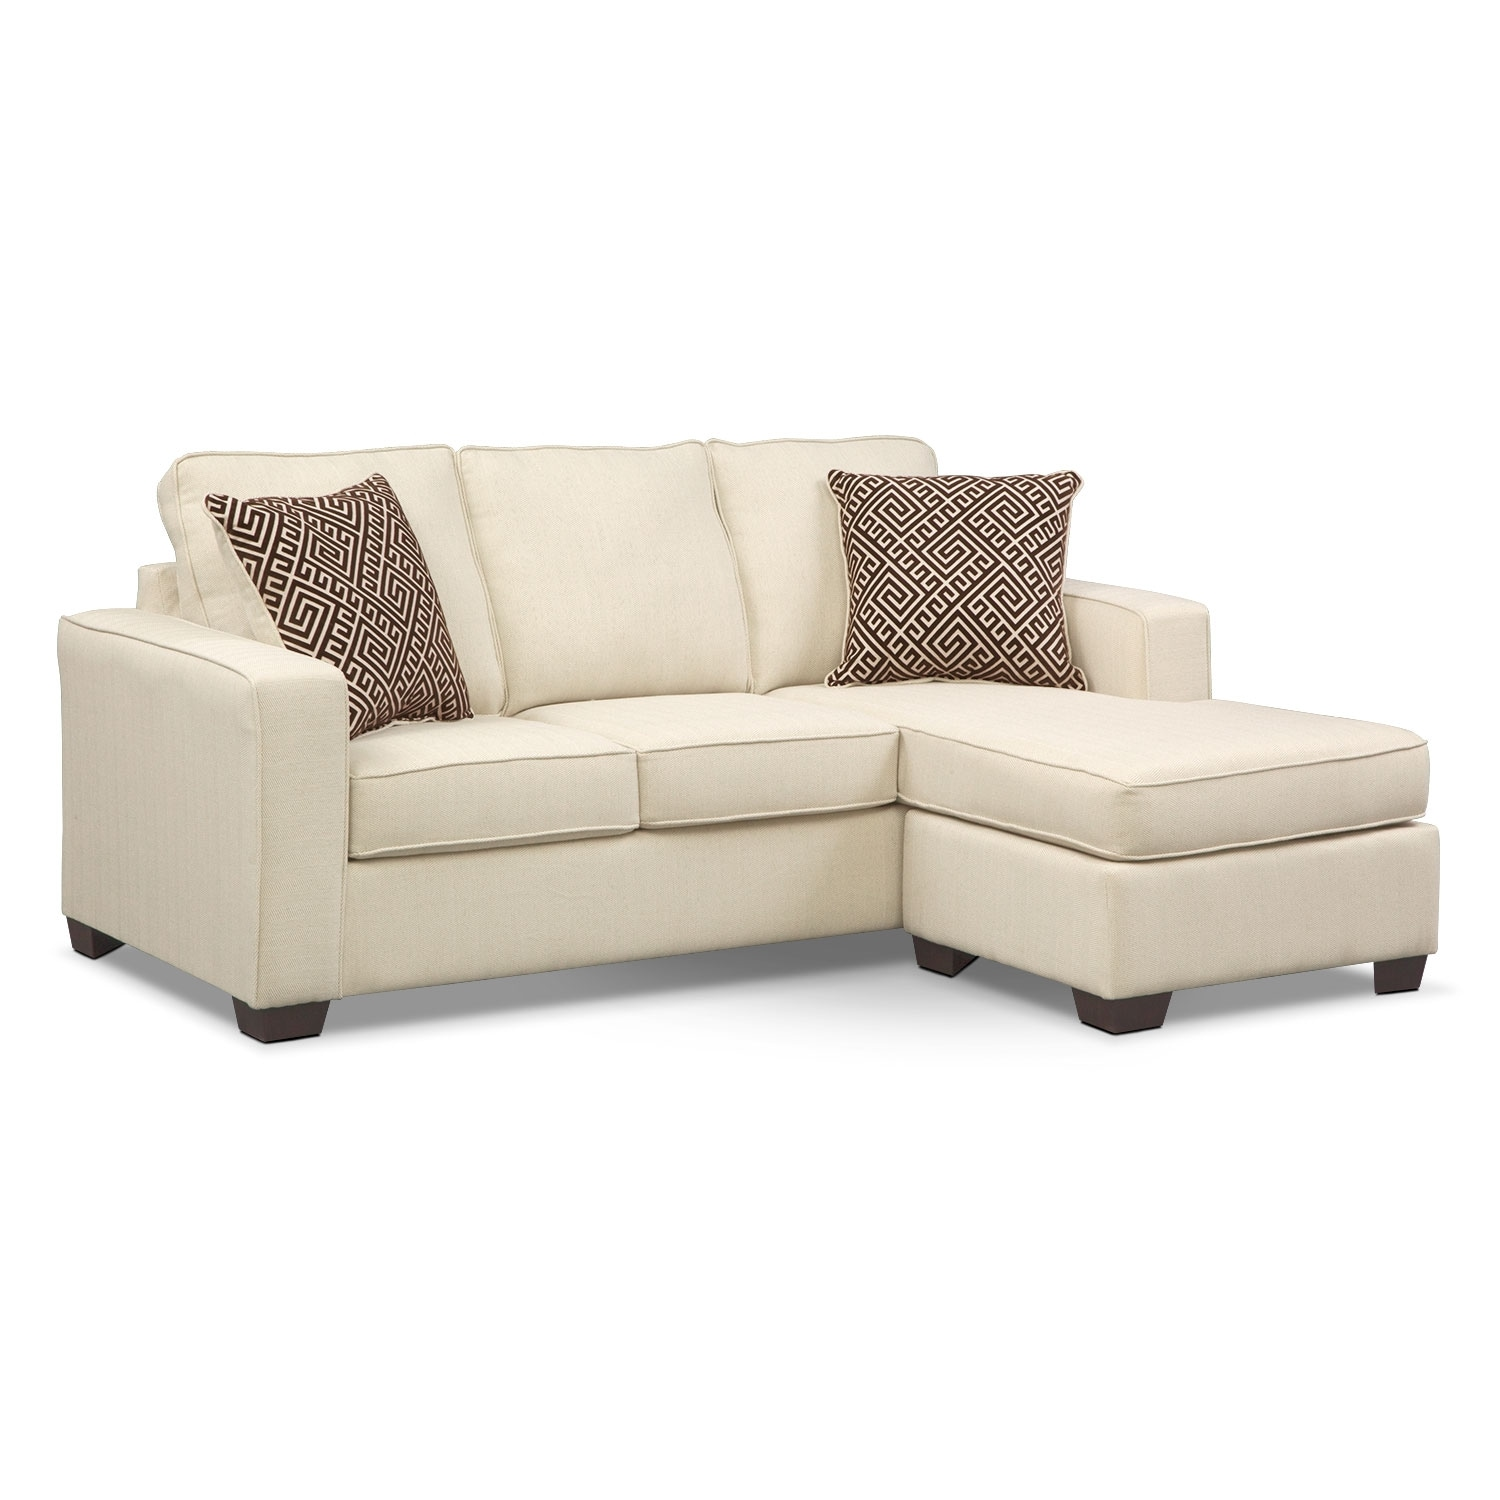 Living room furniture sterling beige queen memory foam sleeper sofa w chaise Sofa sleeper loveseat